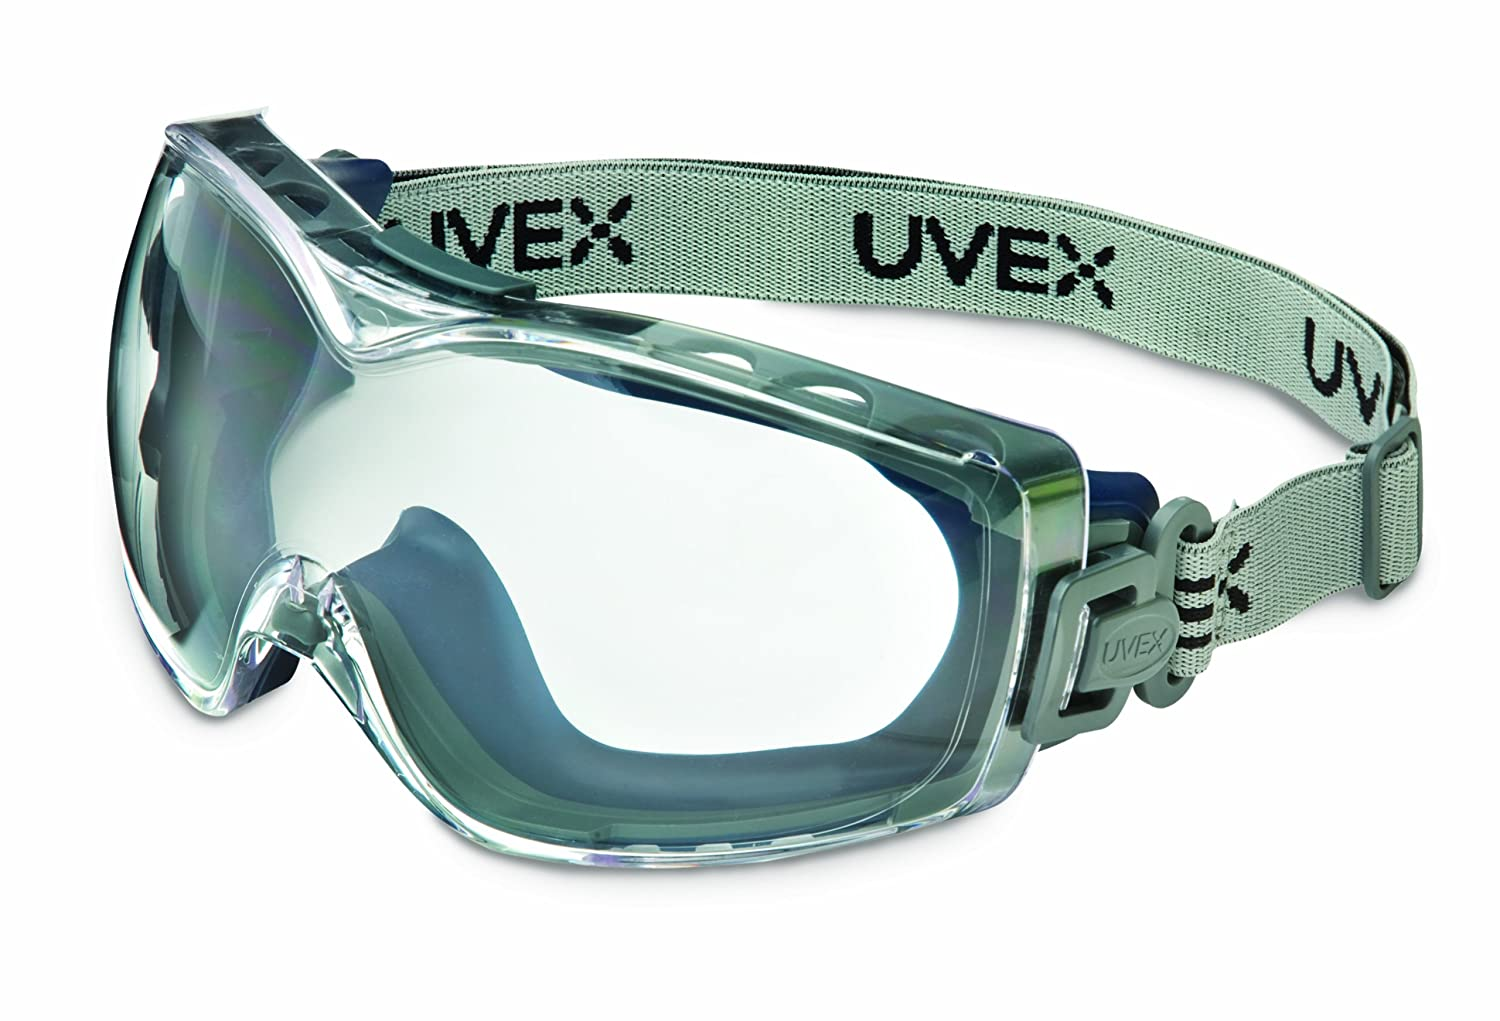 Top 10 Best Anti-Fog Safety Goggles Reviews 2016-2017 on Flipboard